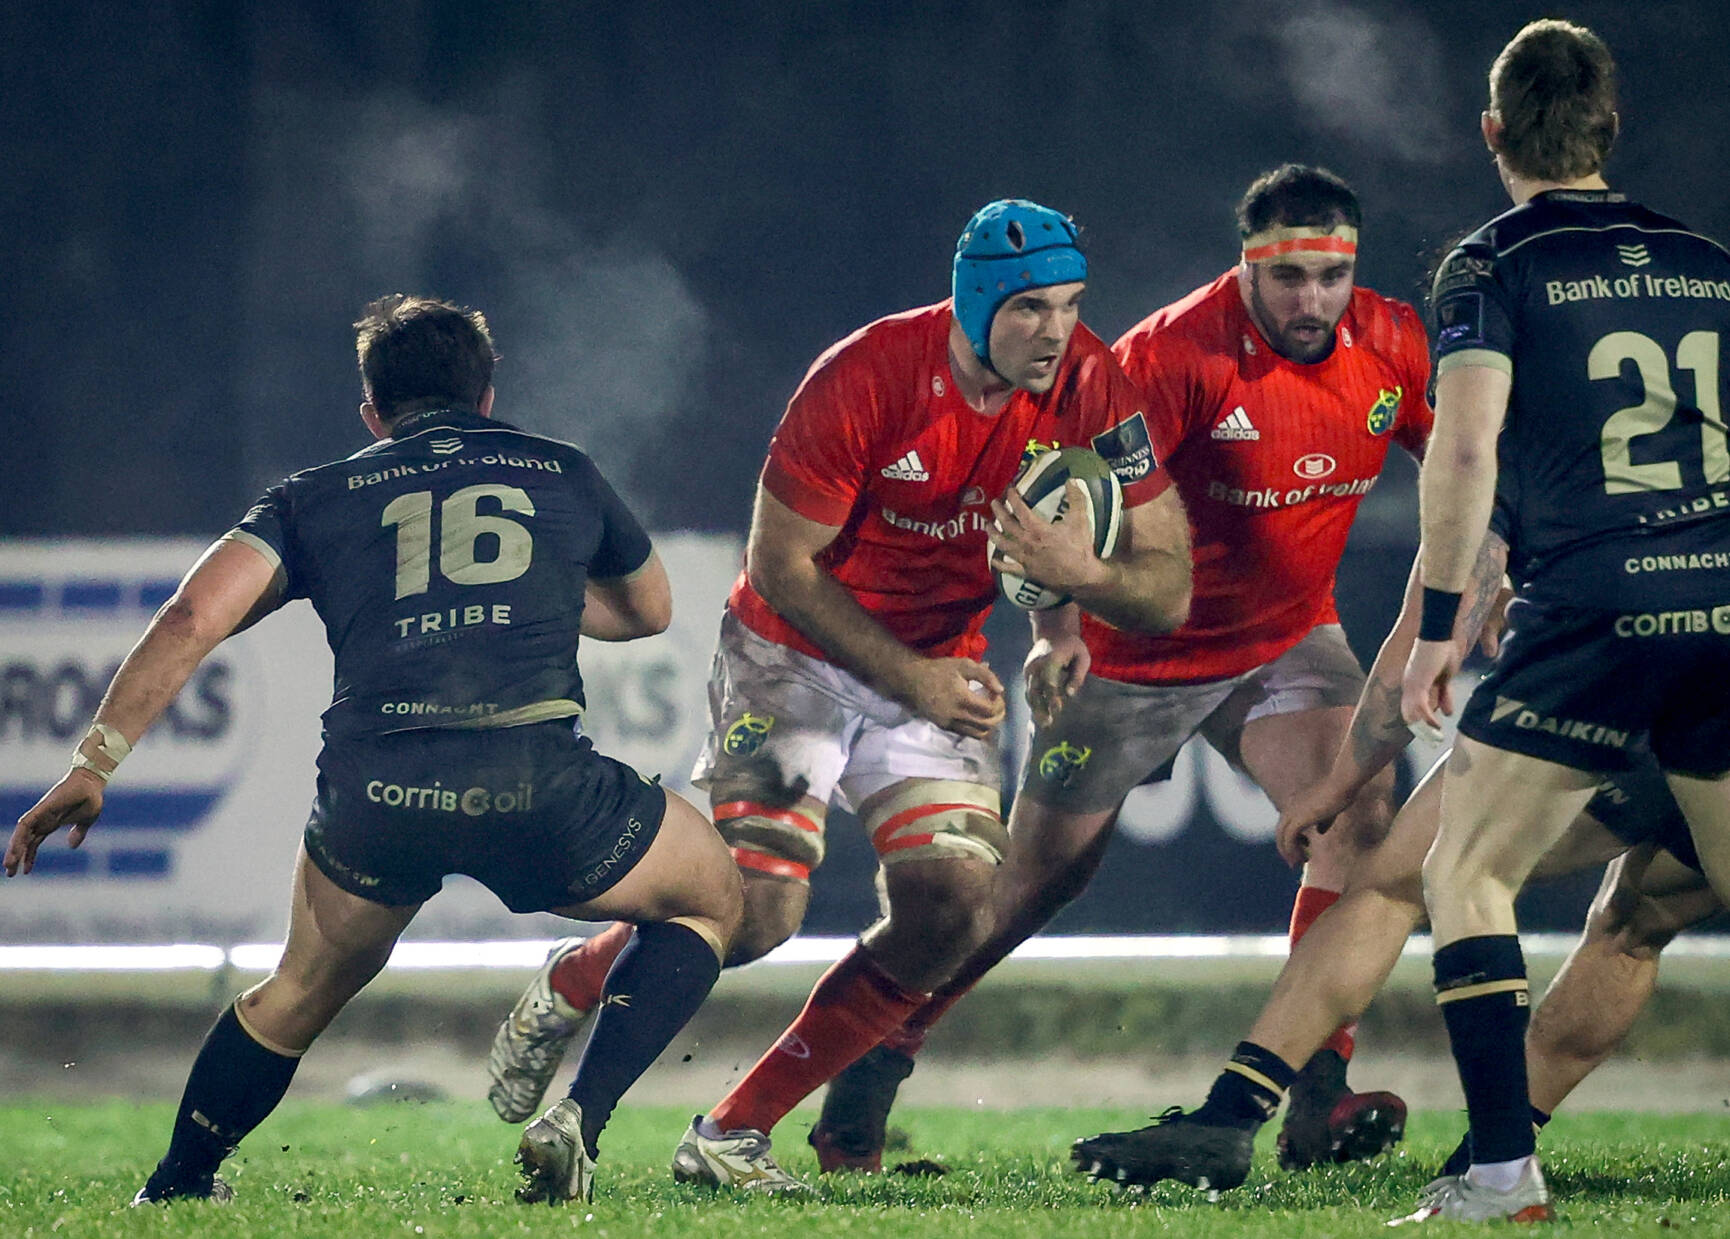 Connacht's Late Rally Not Enough As Munster Extend Lead